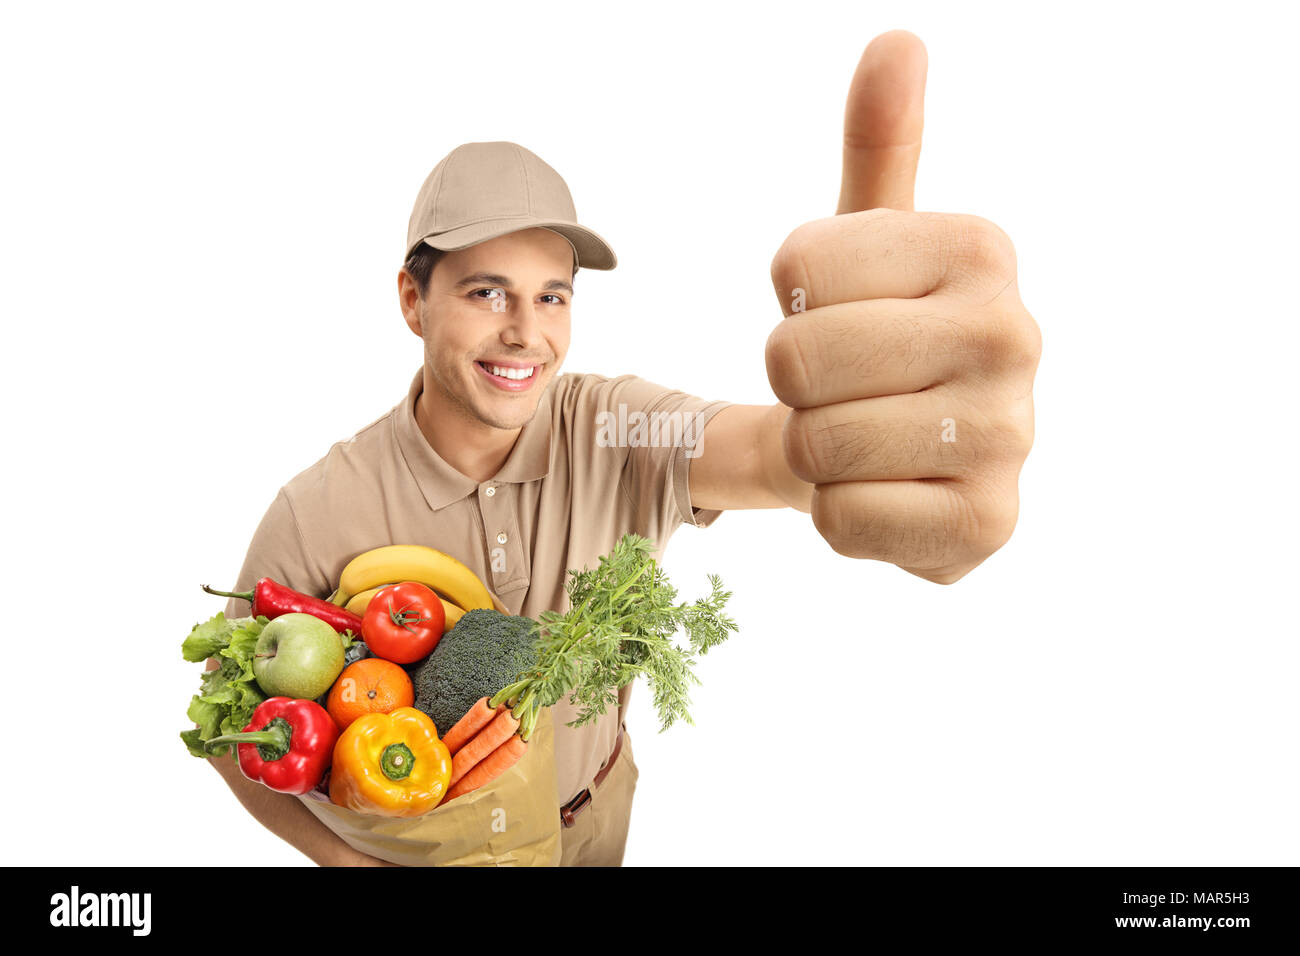 Delivery man with a bag of groceries making a thumb up gesture isolated on white background - Stock Image